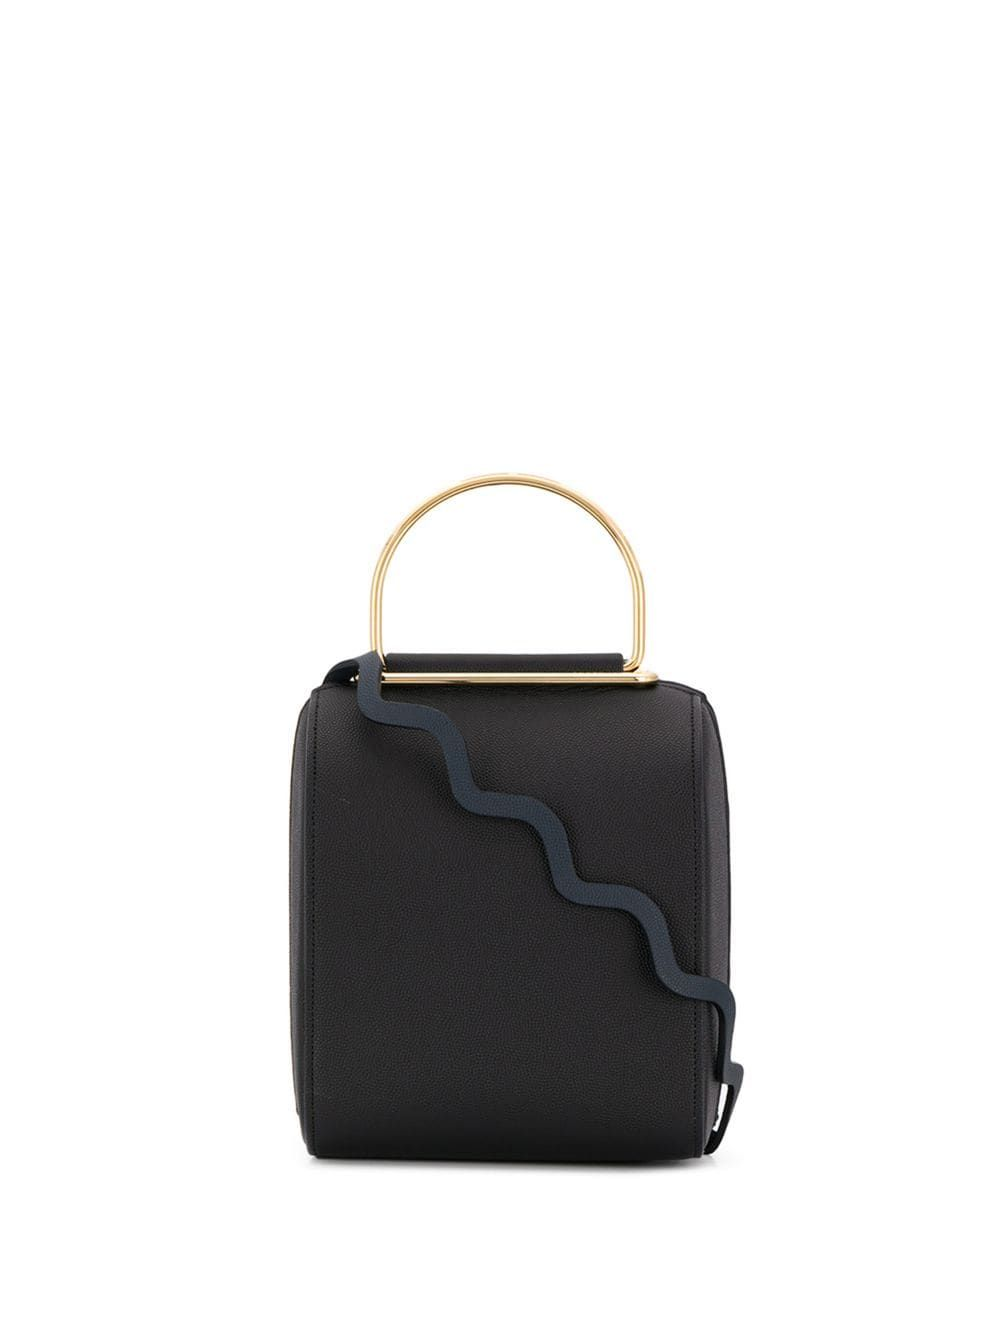 d0e6635eea Roksanda Besa shoulder bag - Black in 2019 | Products | Bags ...